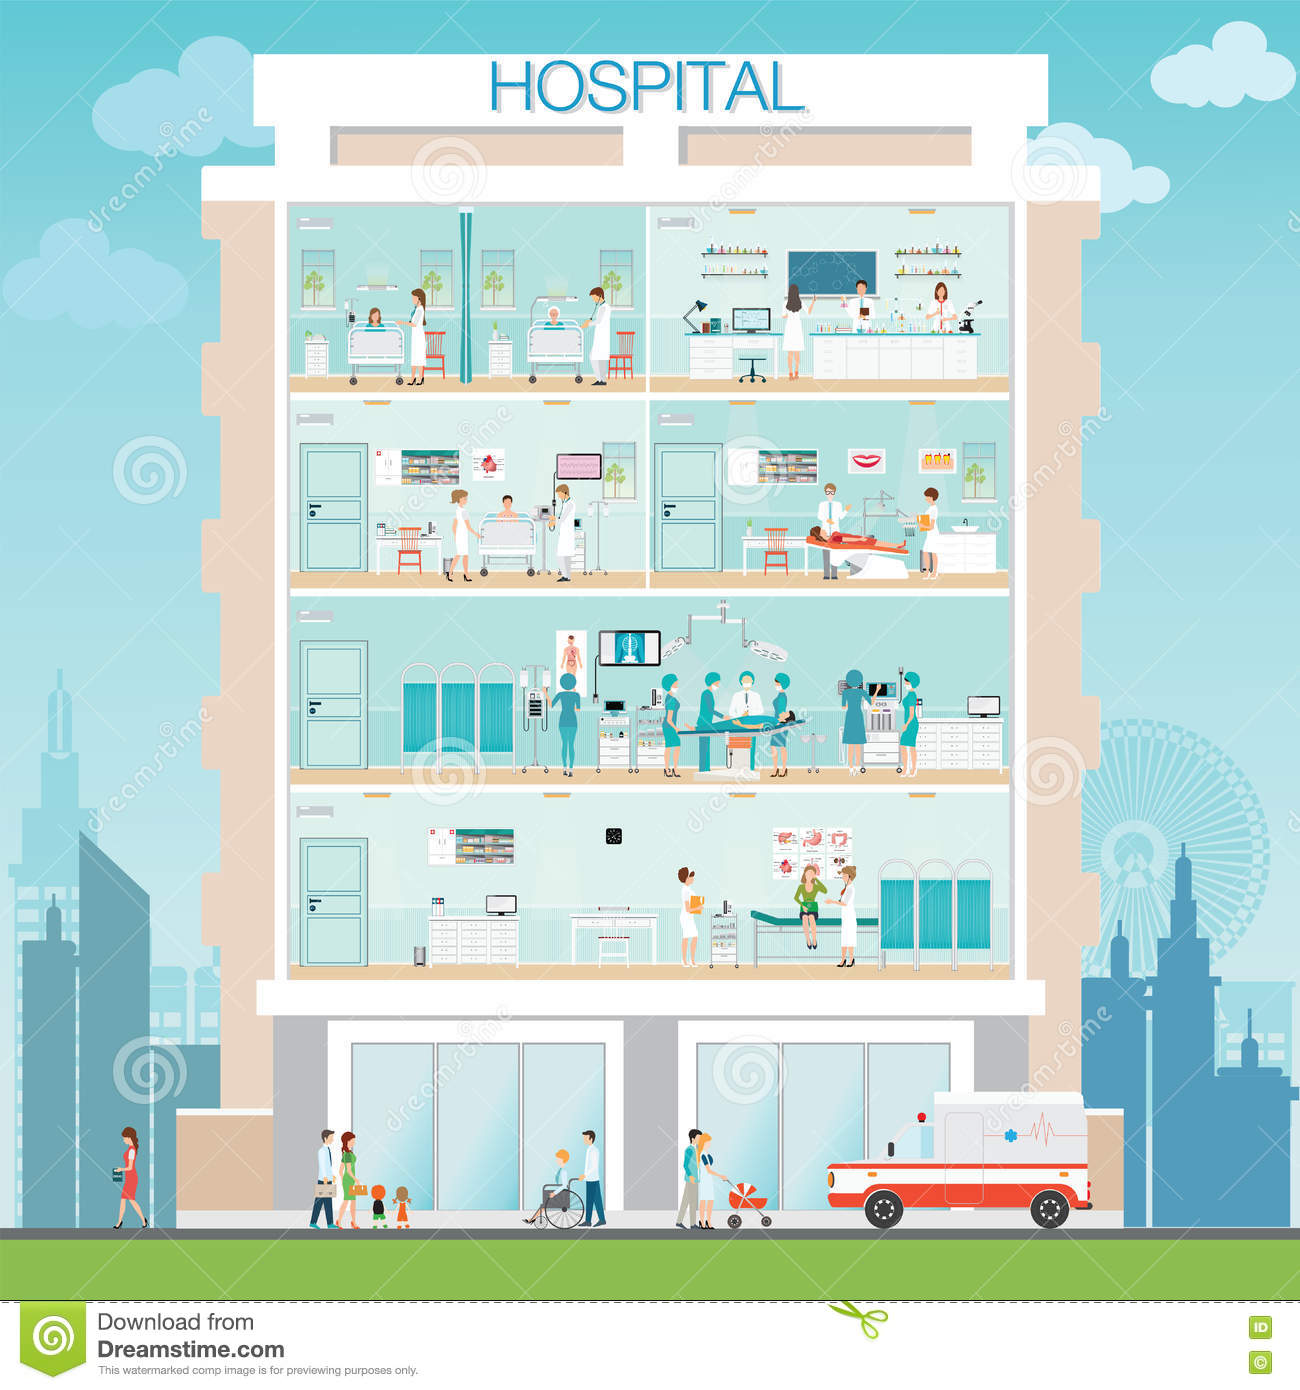 Maternity Hospital Floor Plan: Hospital Building Exterior With Doctor And Patient. Stock